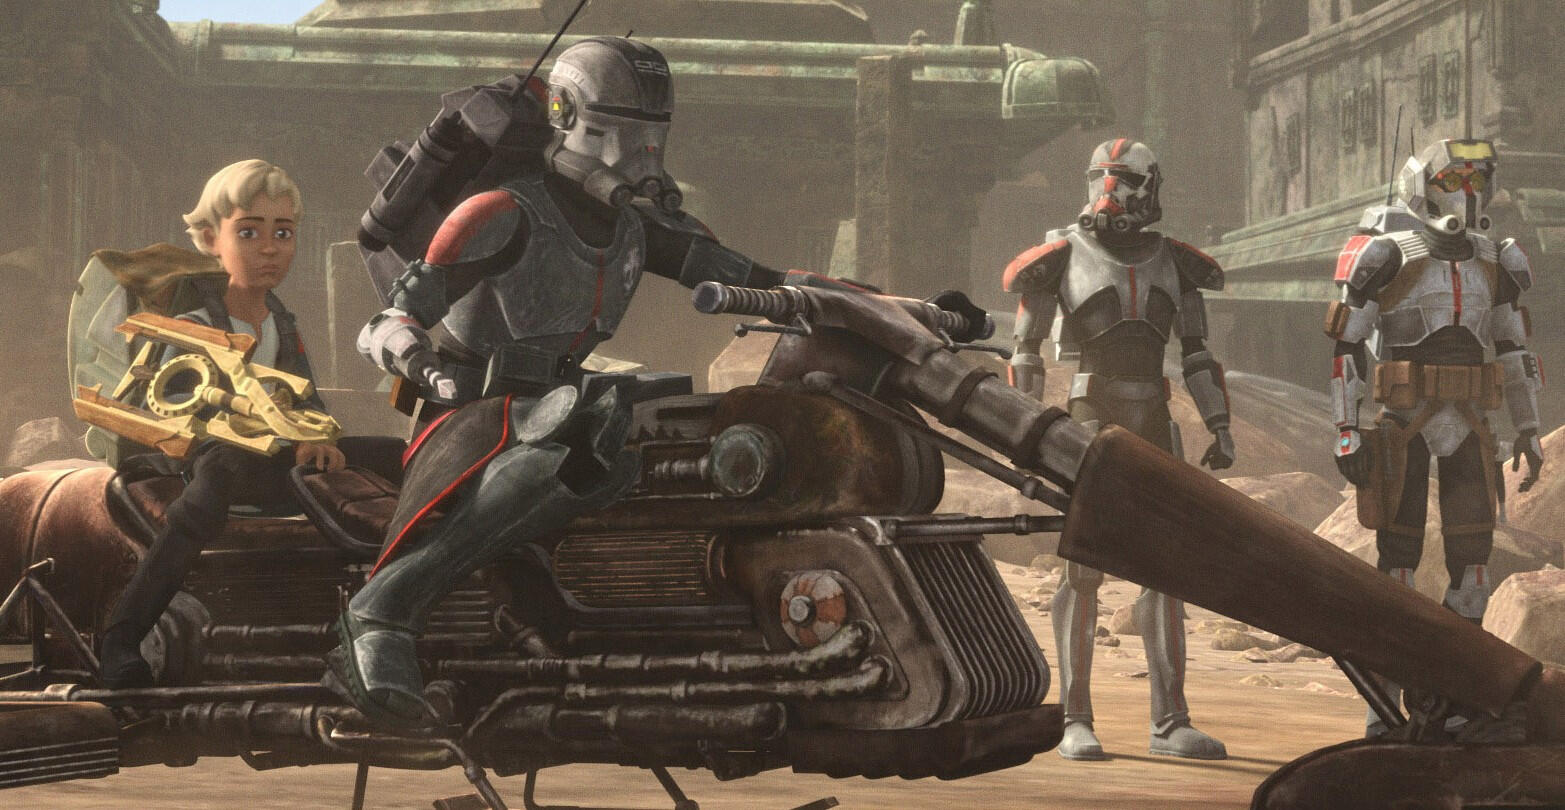 Star Wars: the Bad Batch release dates: when is episode 8 coming to Disney Plus?